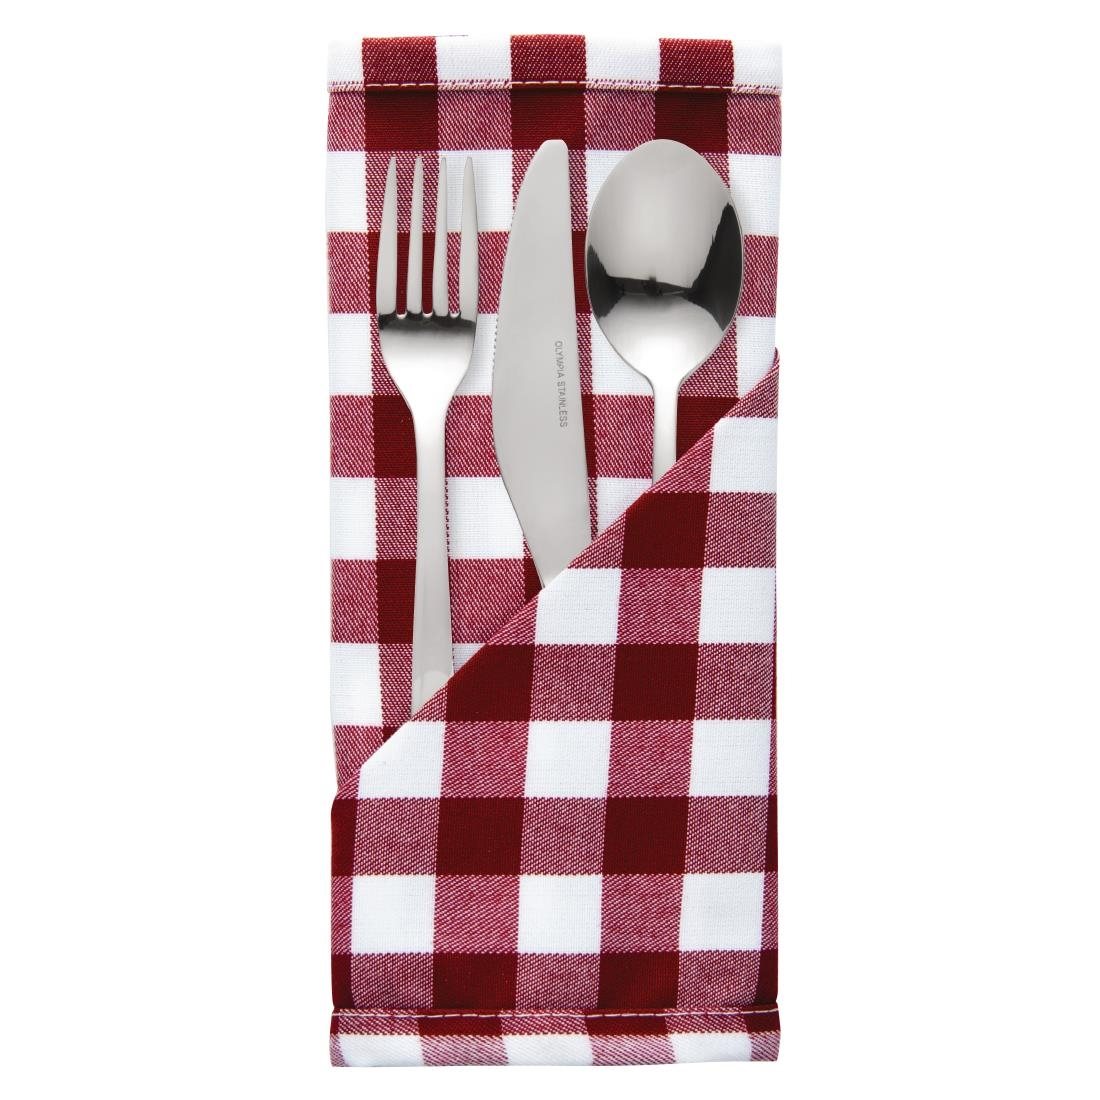 Image of Gingham Polyester Napkins Red Check (Pack of 10) Pack of 10